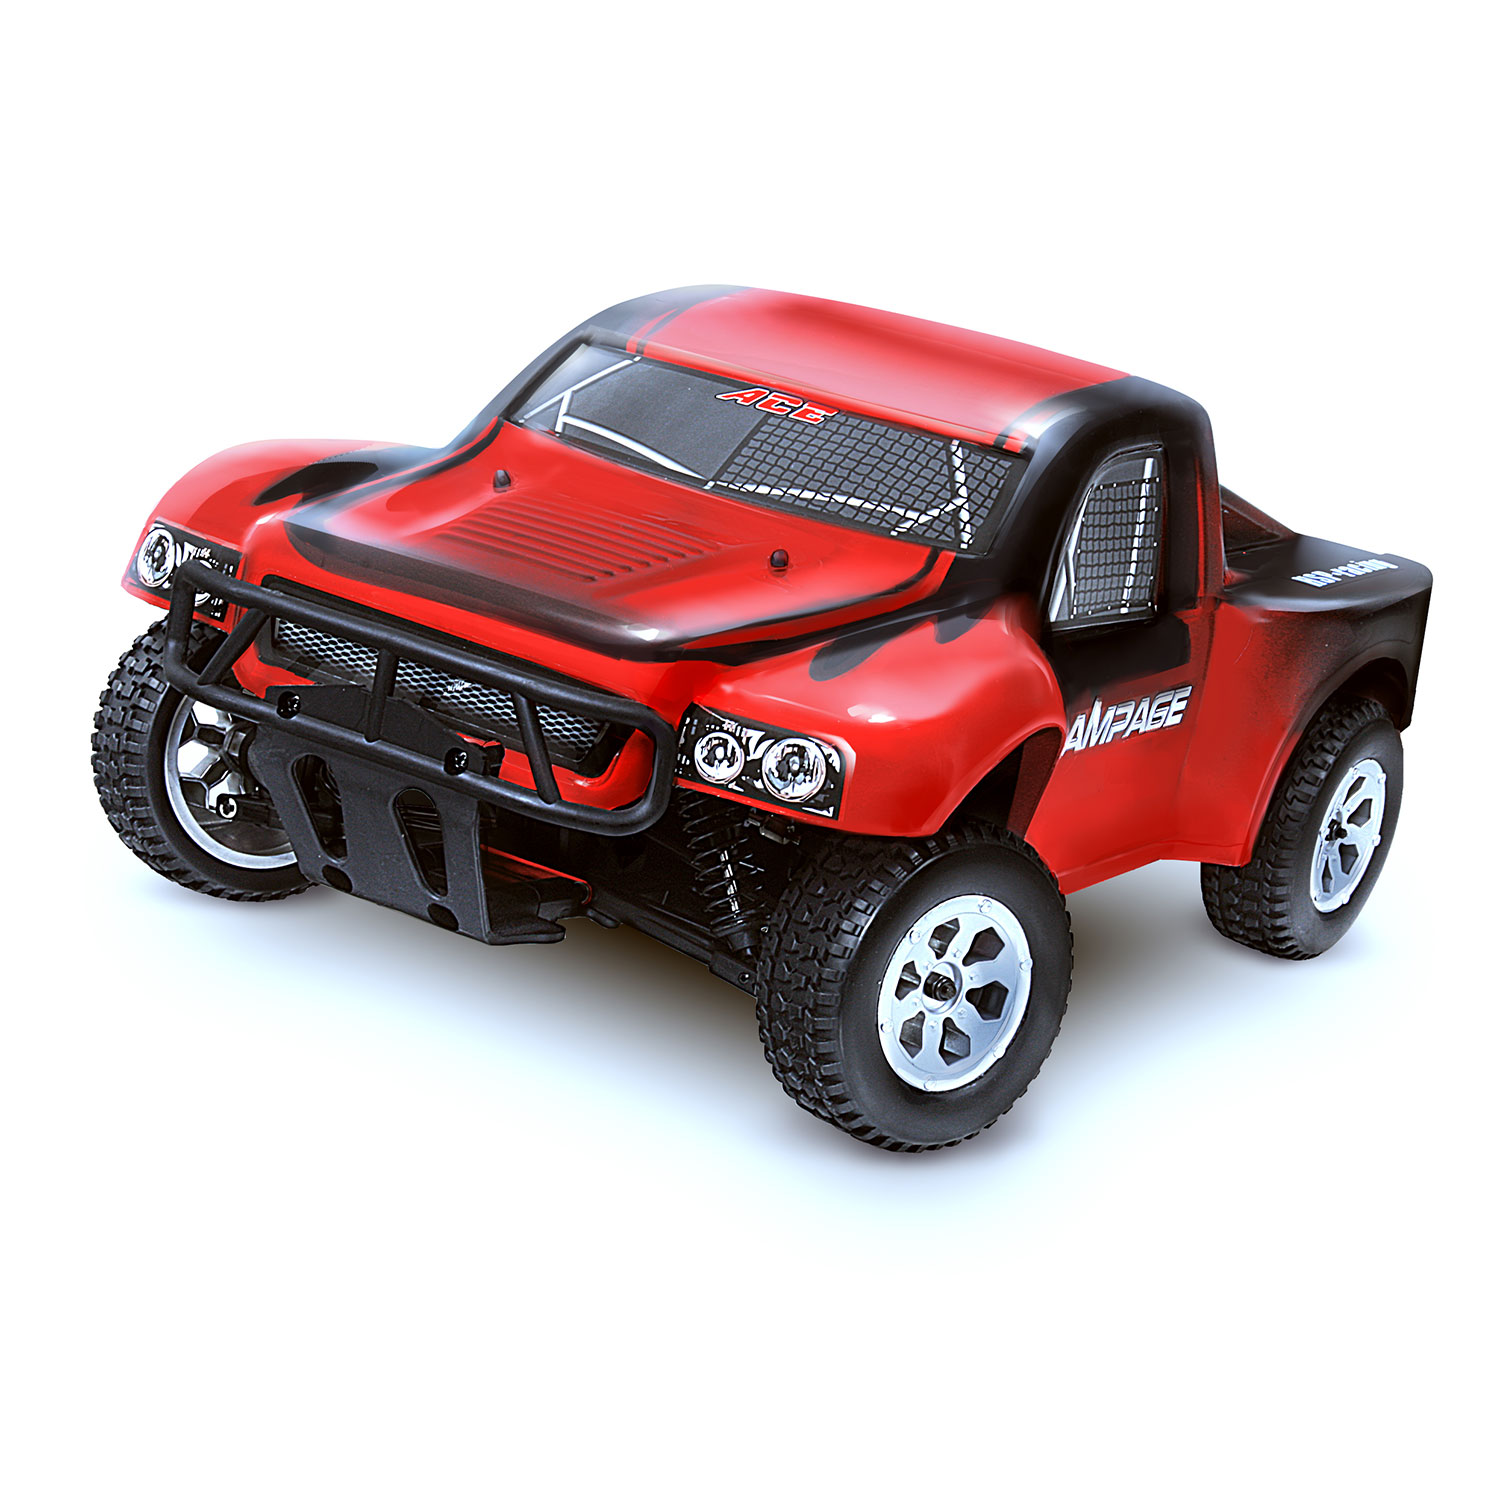 traxxas nitro trucks with Hsp Ace R Age Short Course Red Rc Truck on 222440400326 also Watch moreover RedcatRacingR ageXSC4WD15GasRTRRCStadiumTruck in addition Best Rc Trucks likewise Proline Bronco Body For Savage And Revo.